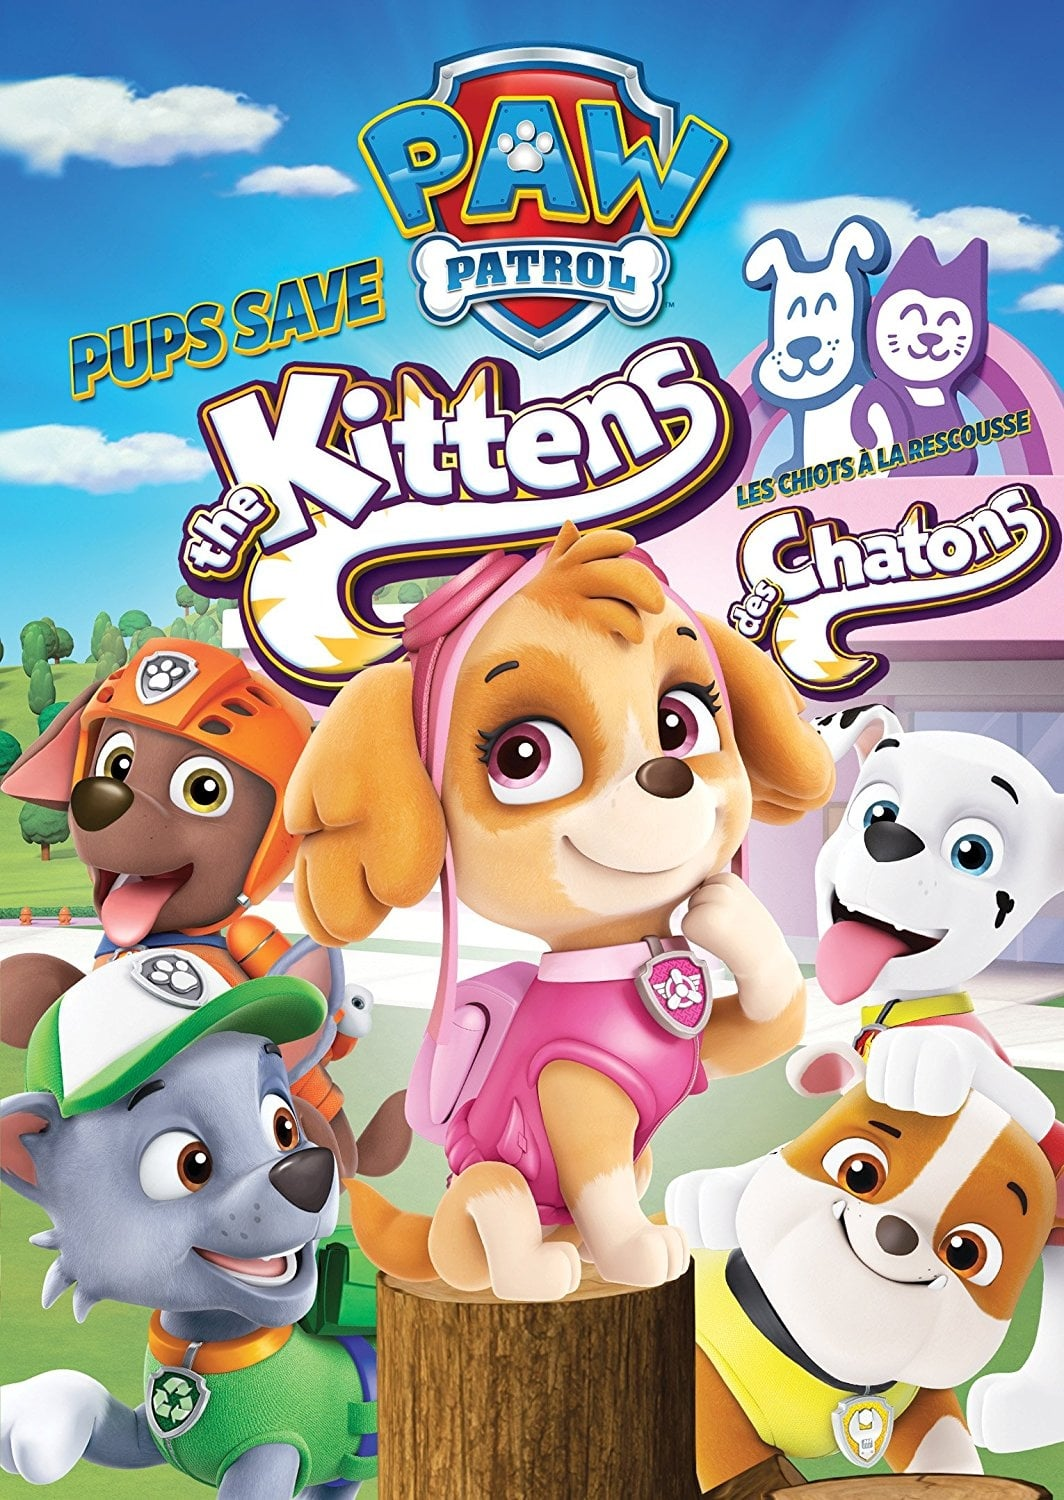 Paw Patrol - Pups Save the Kittens